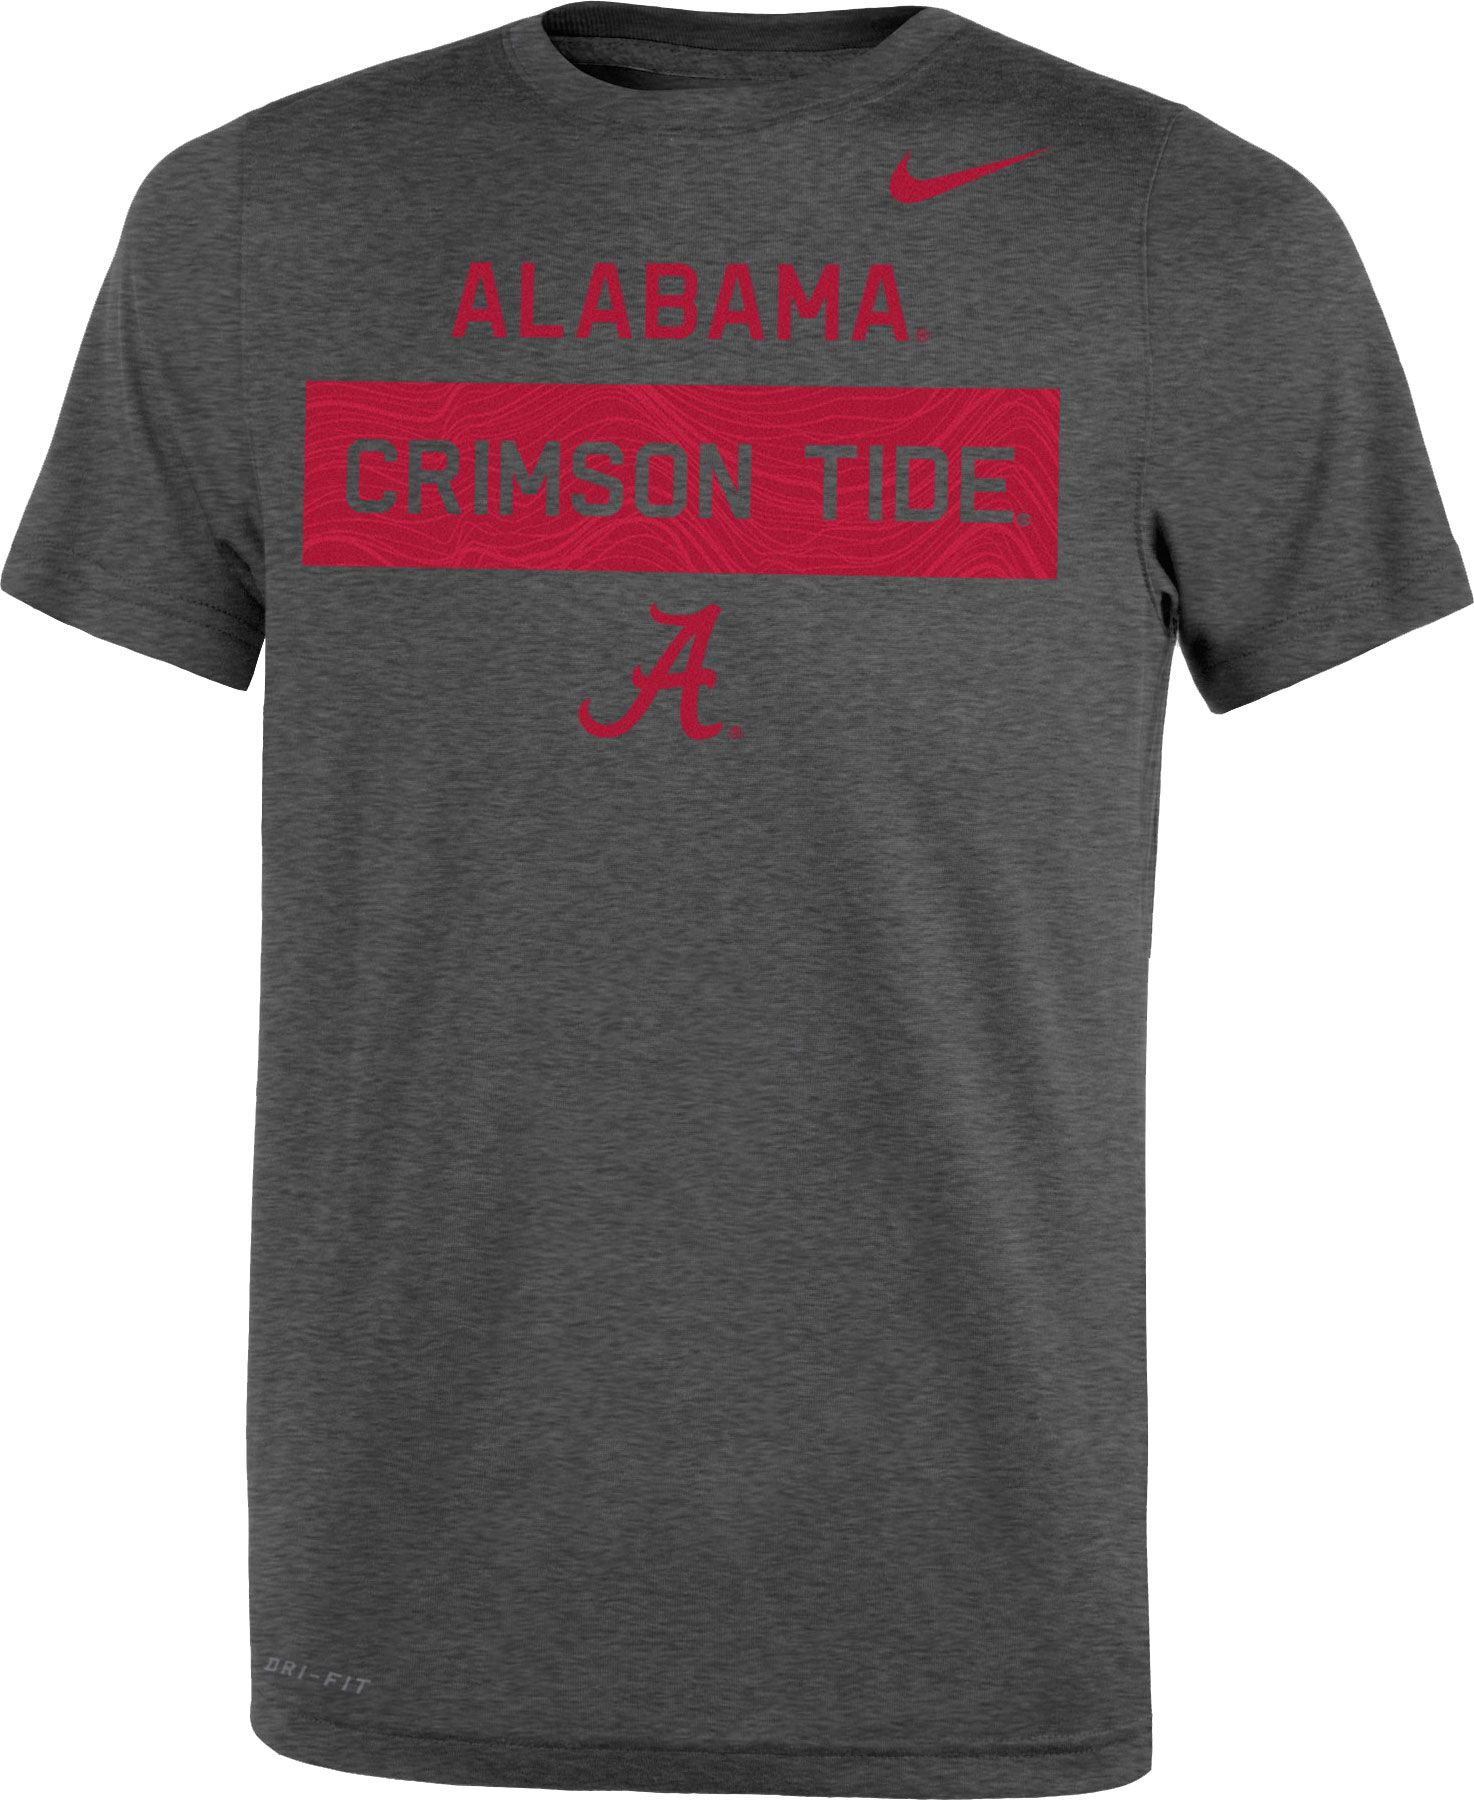 dicks alabama jersey